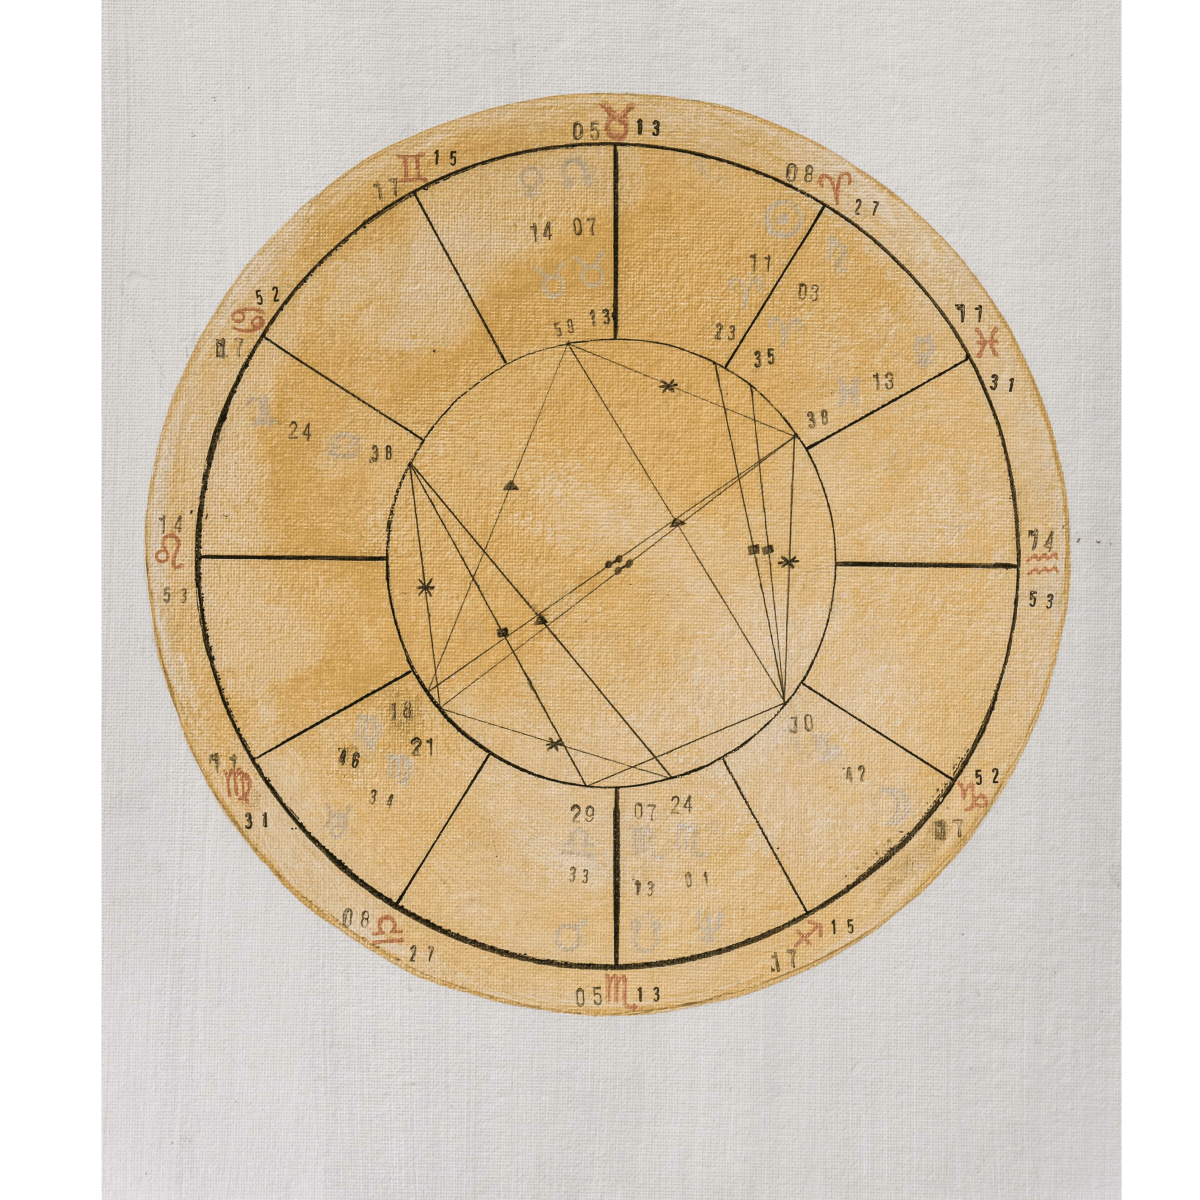 Heidi Rose Hand-Painted Astrological Chart